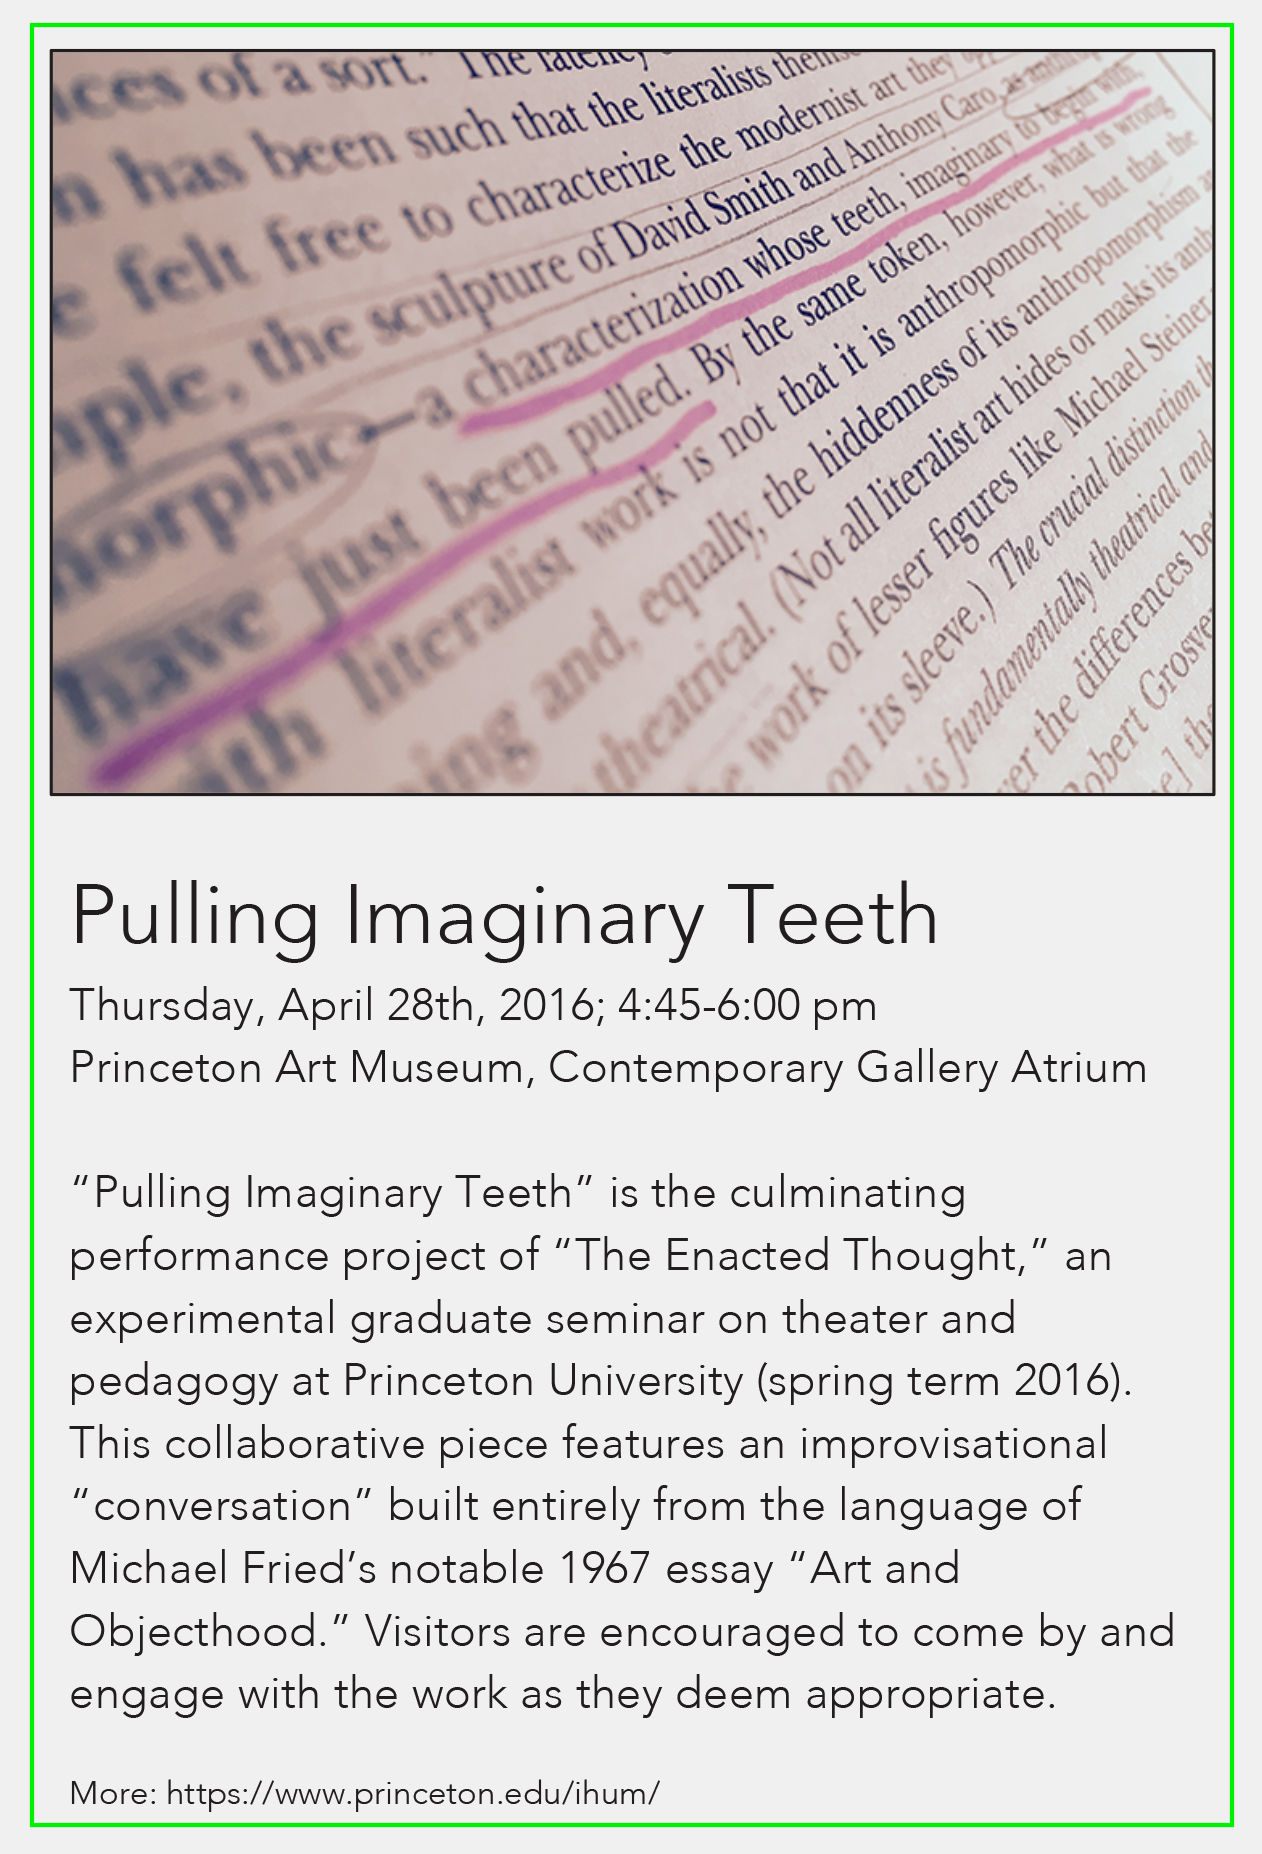 enactedthought princeton art museum it was a jointly conceived and jointly executed effort to experiment non traditional forms of textual critical engagement